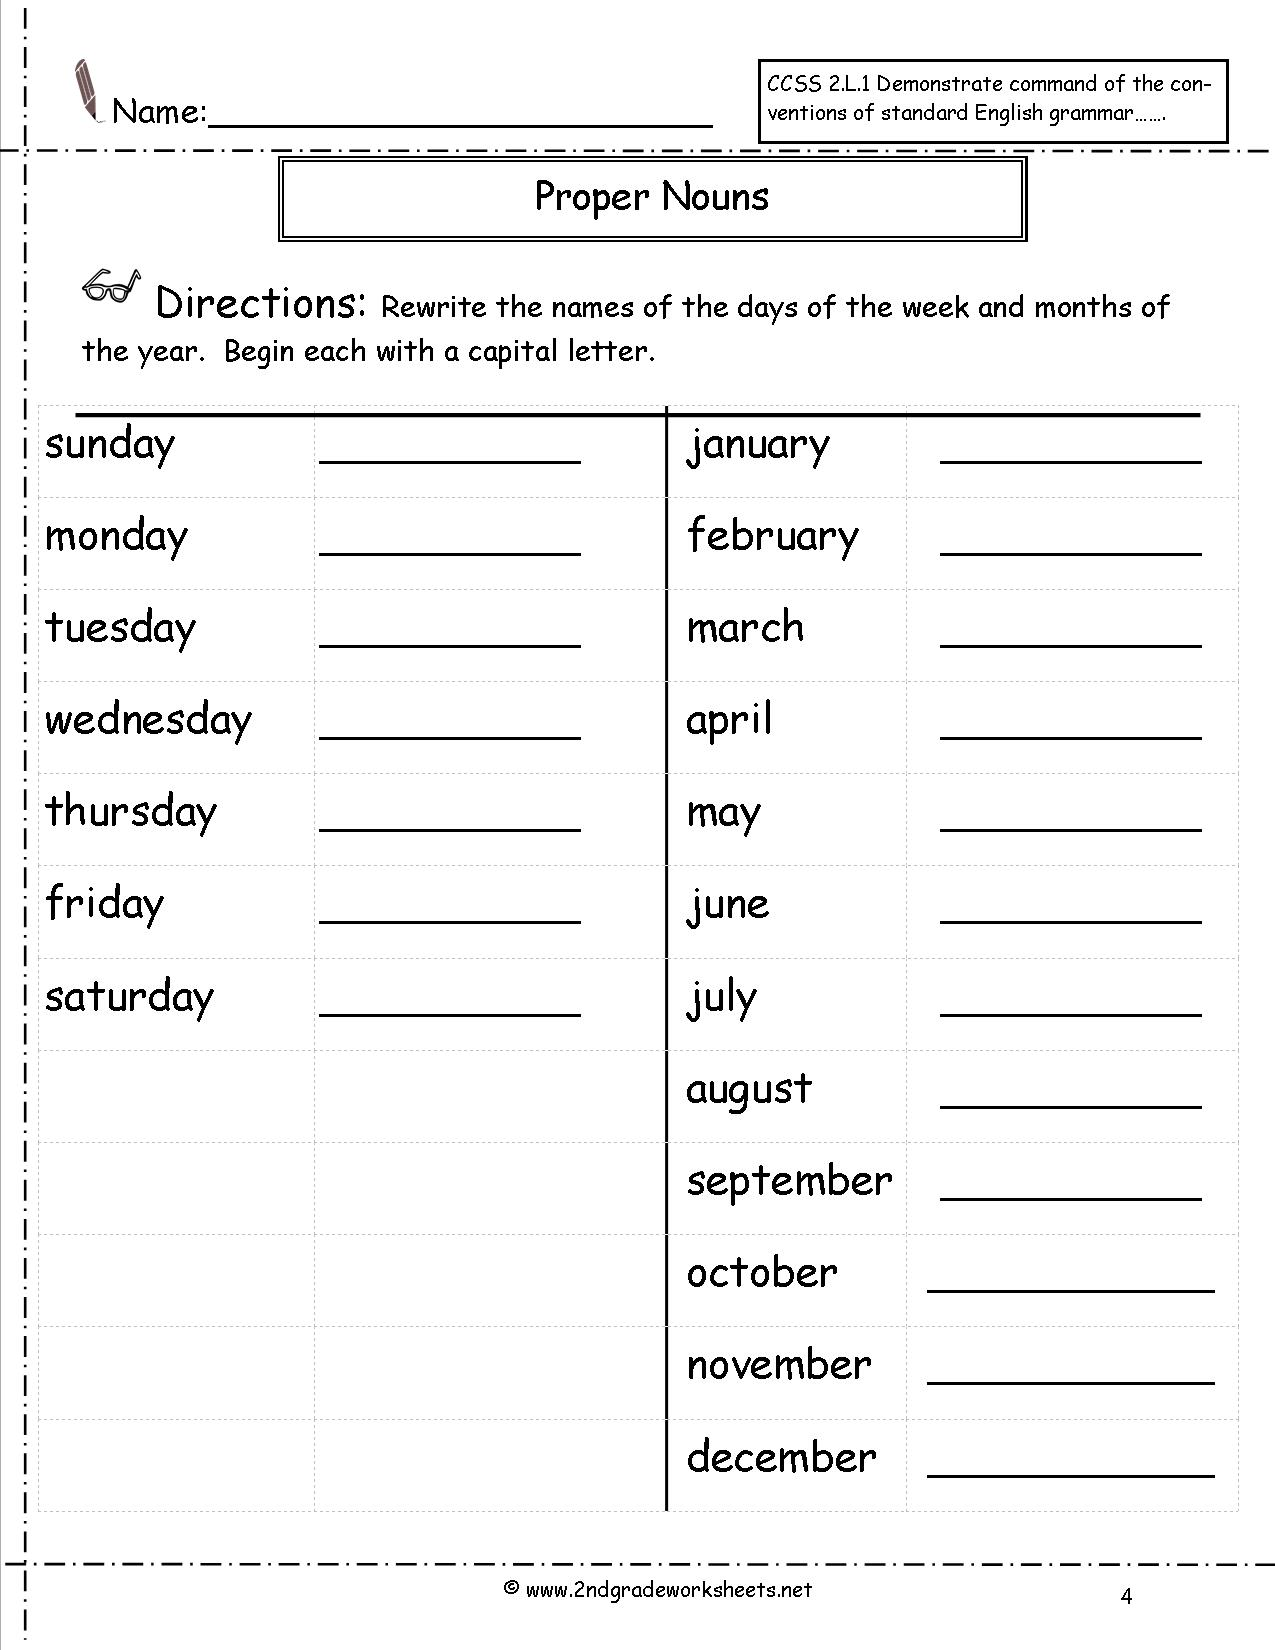 hight resolution of Proper Nouns And Common Nouns Worksheet   Printable Worksheets and  Activities for Teachers